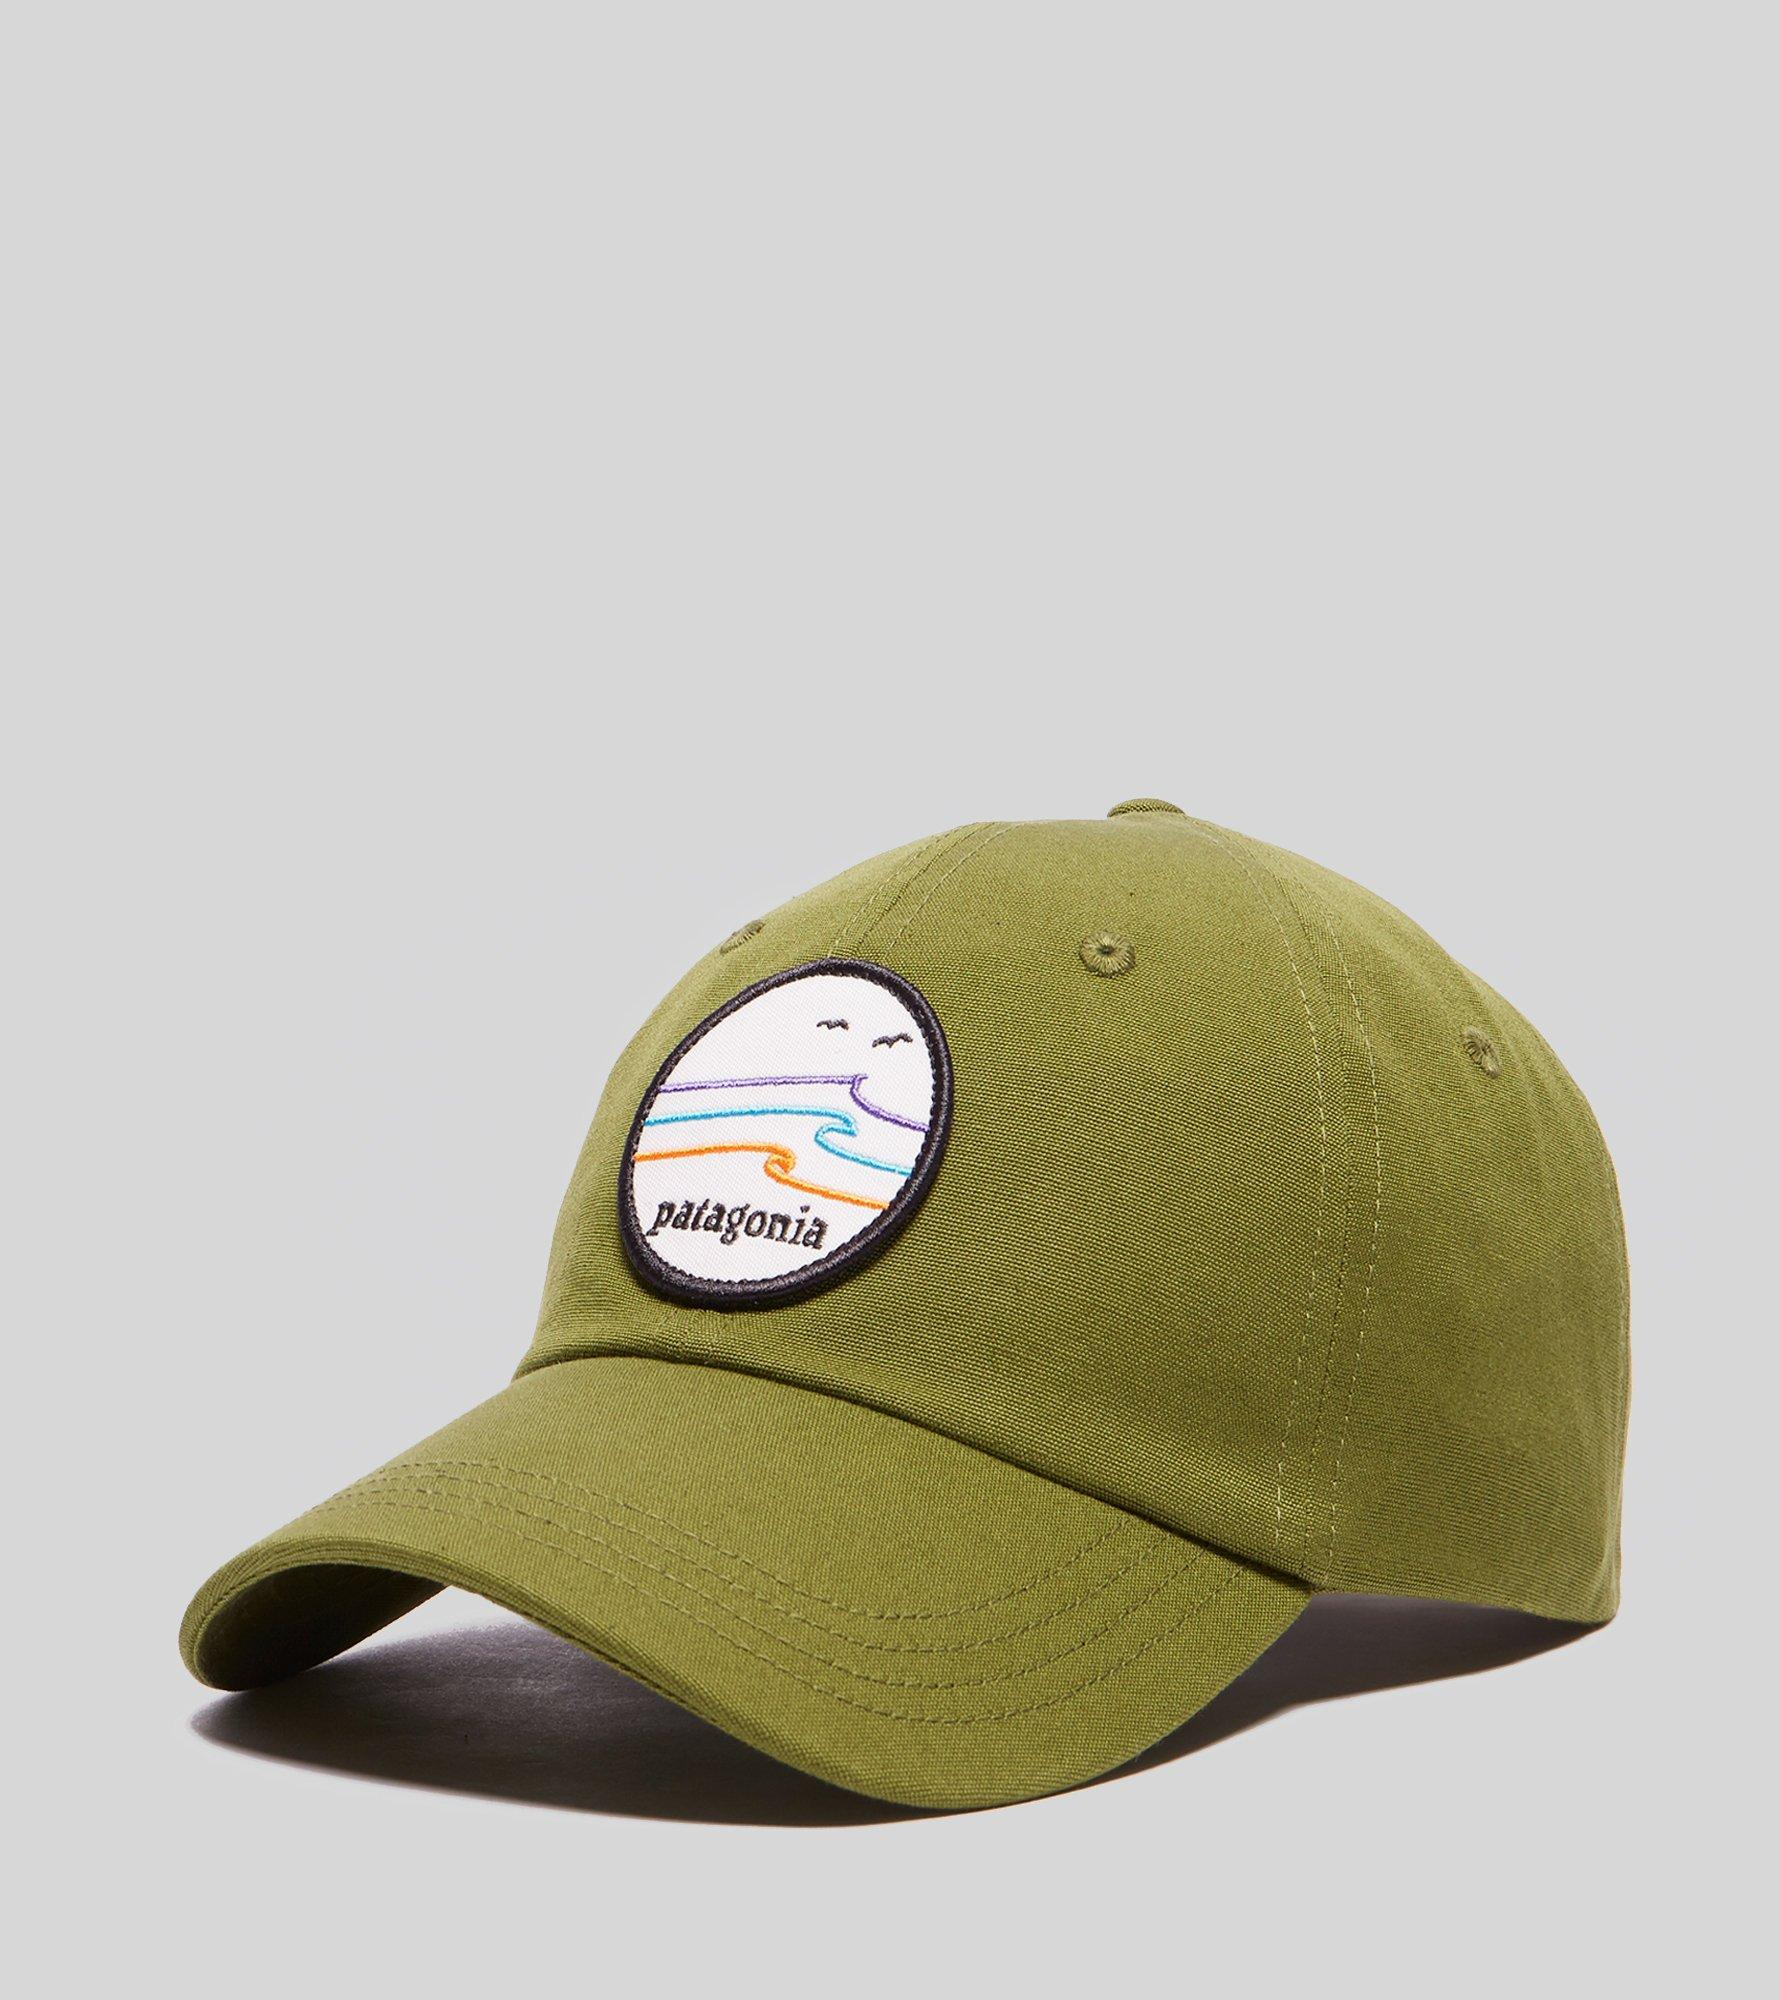 607ccd61a03 Patagonia Ride Trad Cap in Green for Men - Lyst